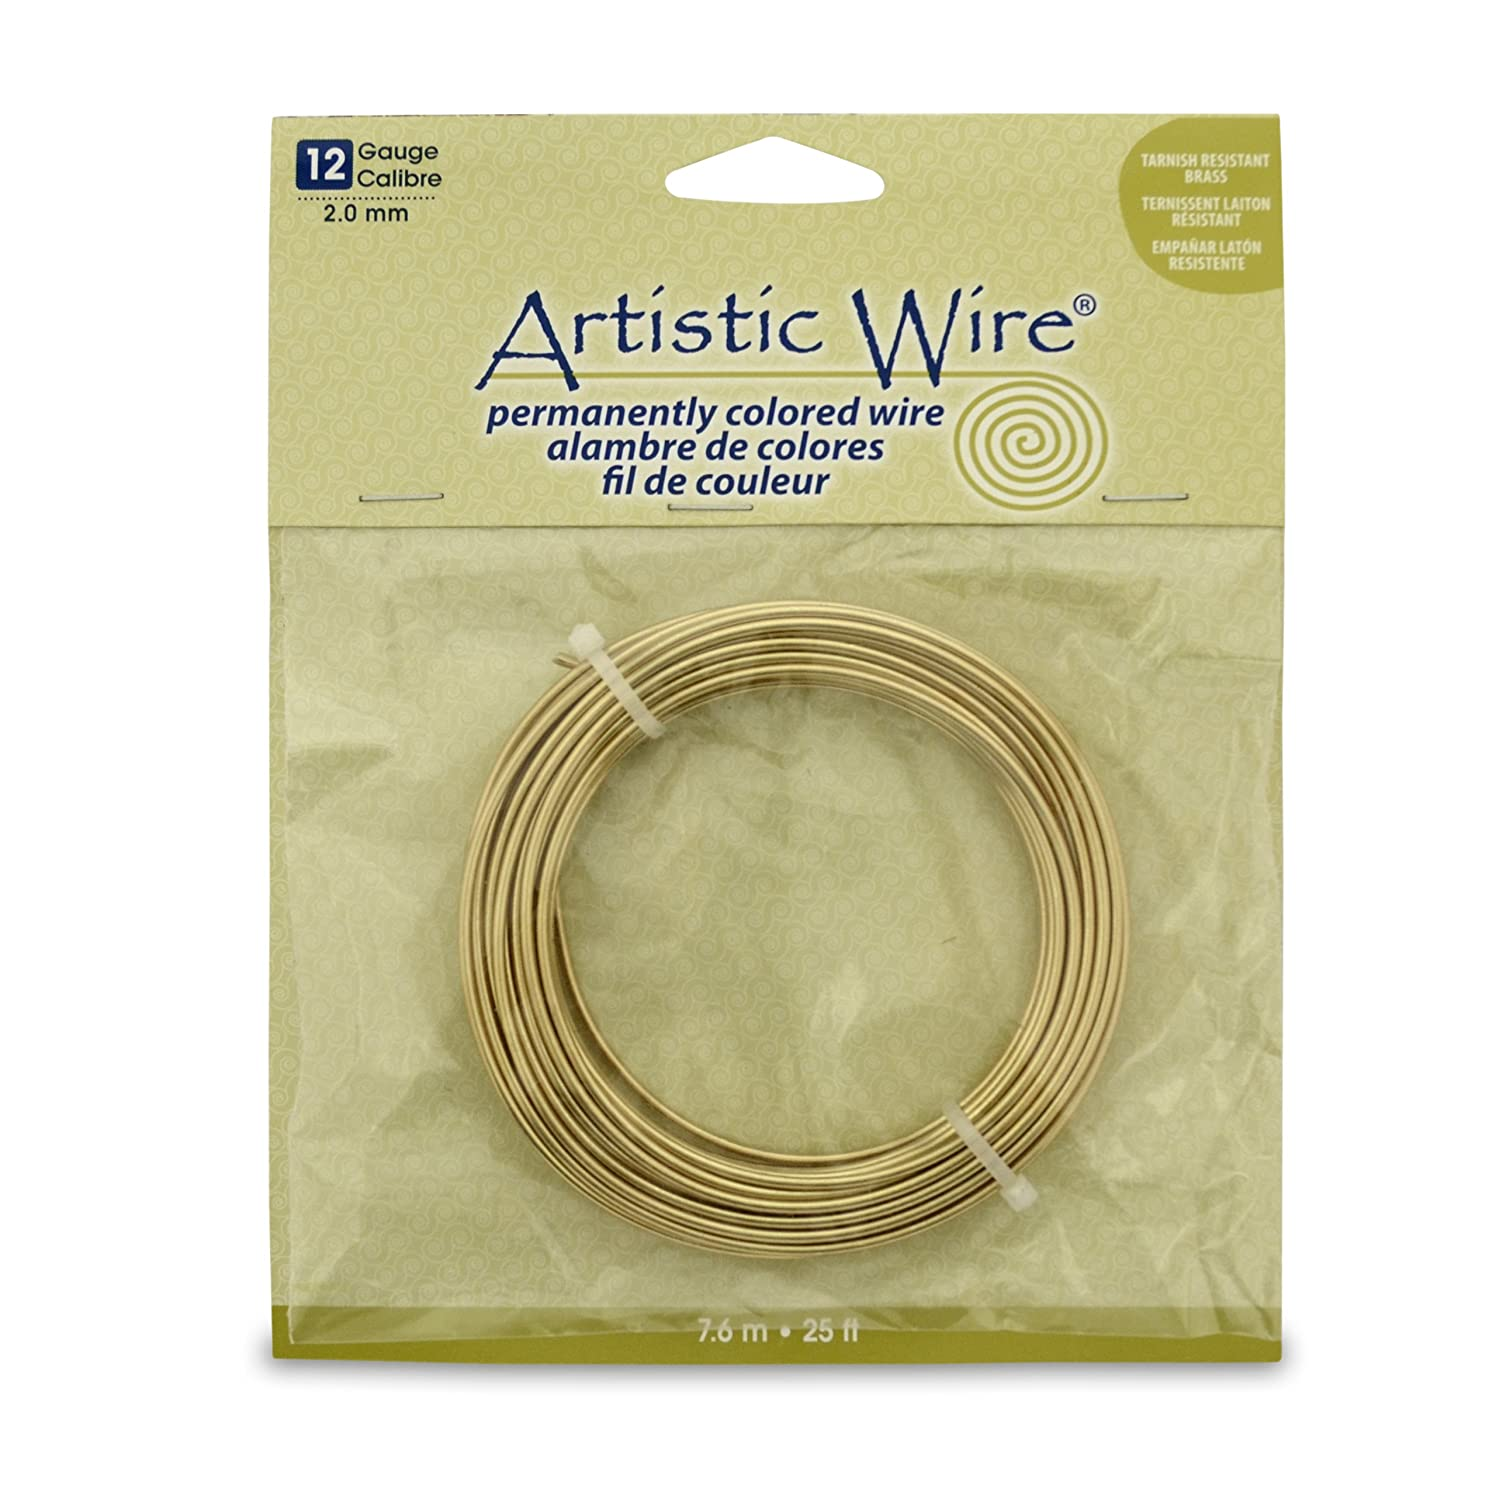 Artistic Wire 12 Gauge Wire, Tarn Resist Brass, 25-Feet